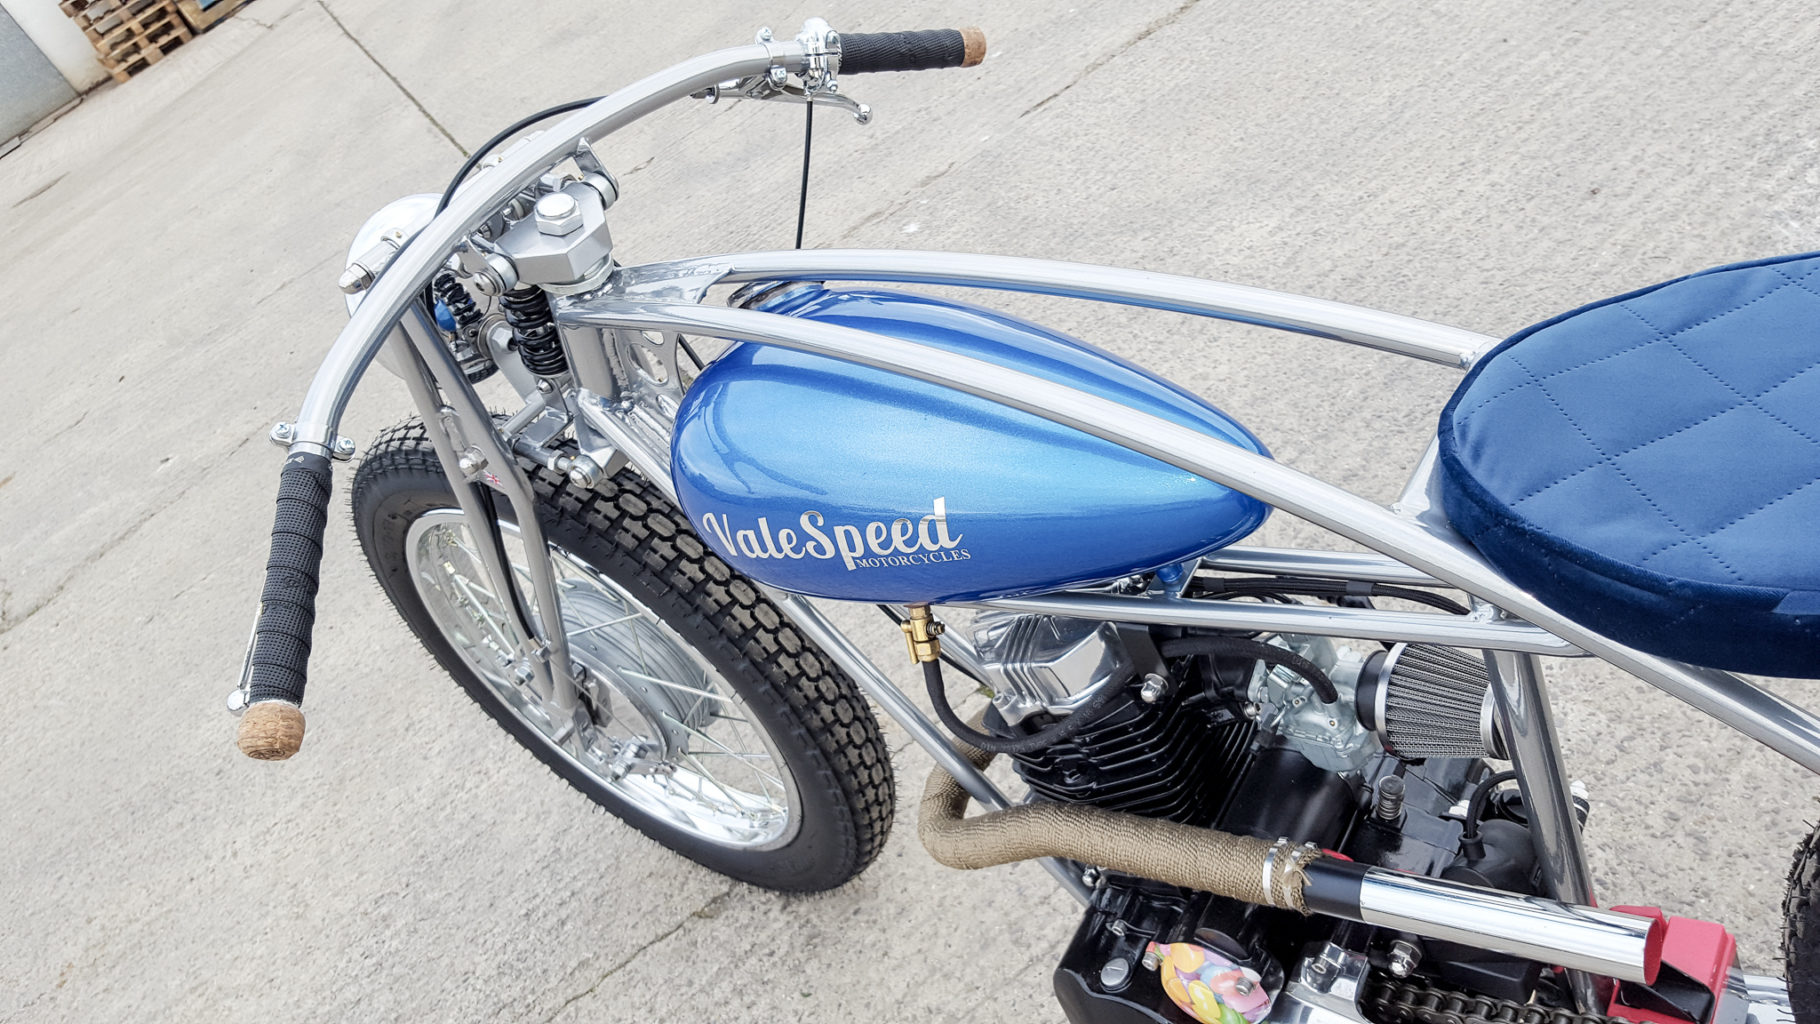 """Valespeed 28"" from Valespeed Motorcycles"